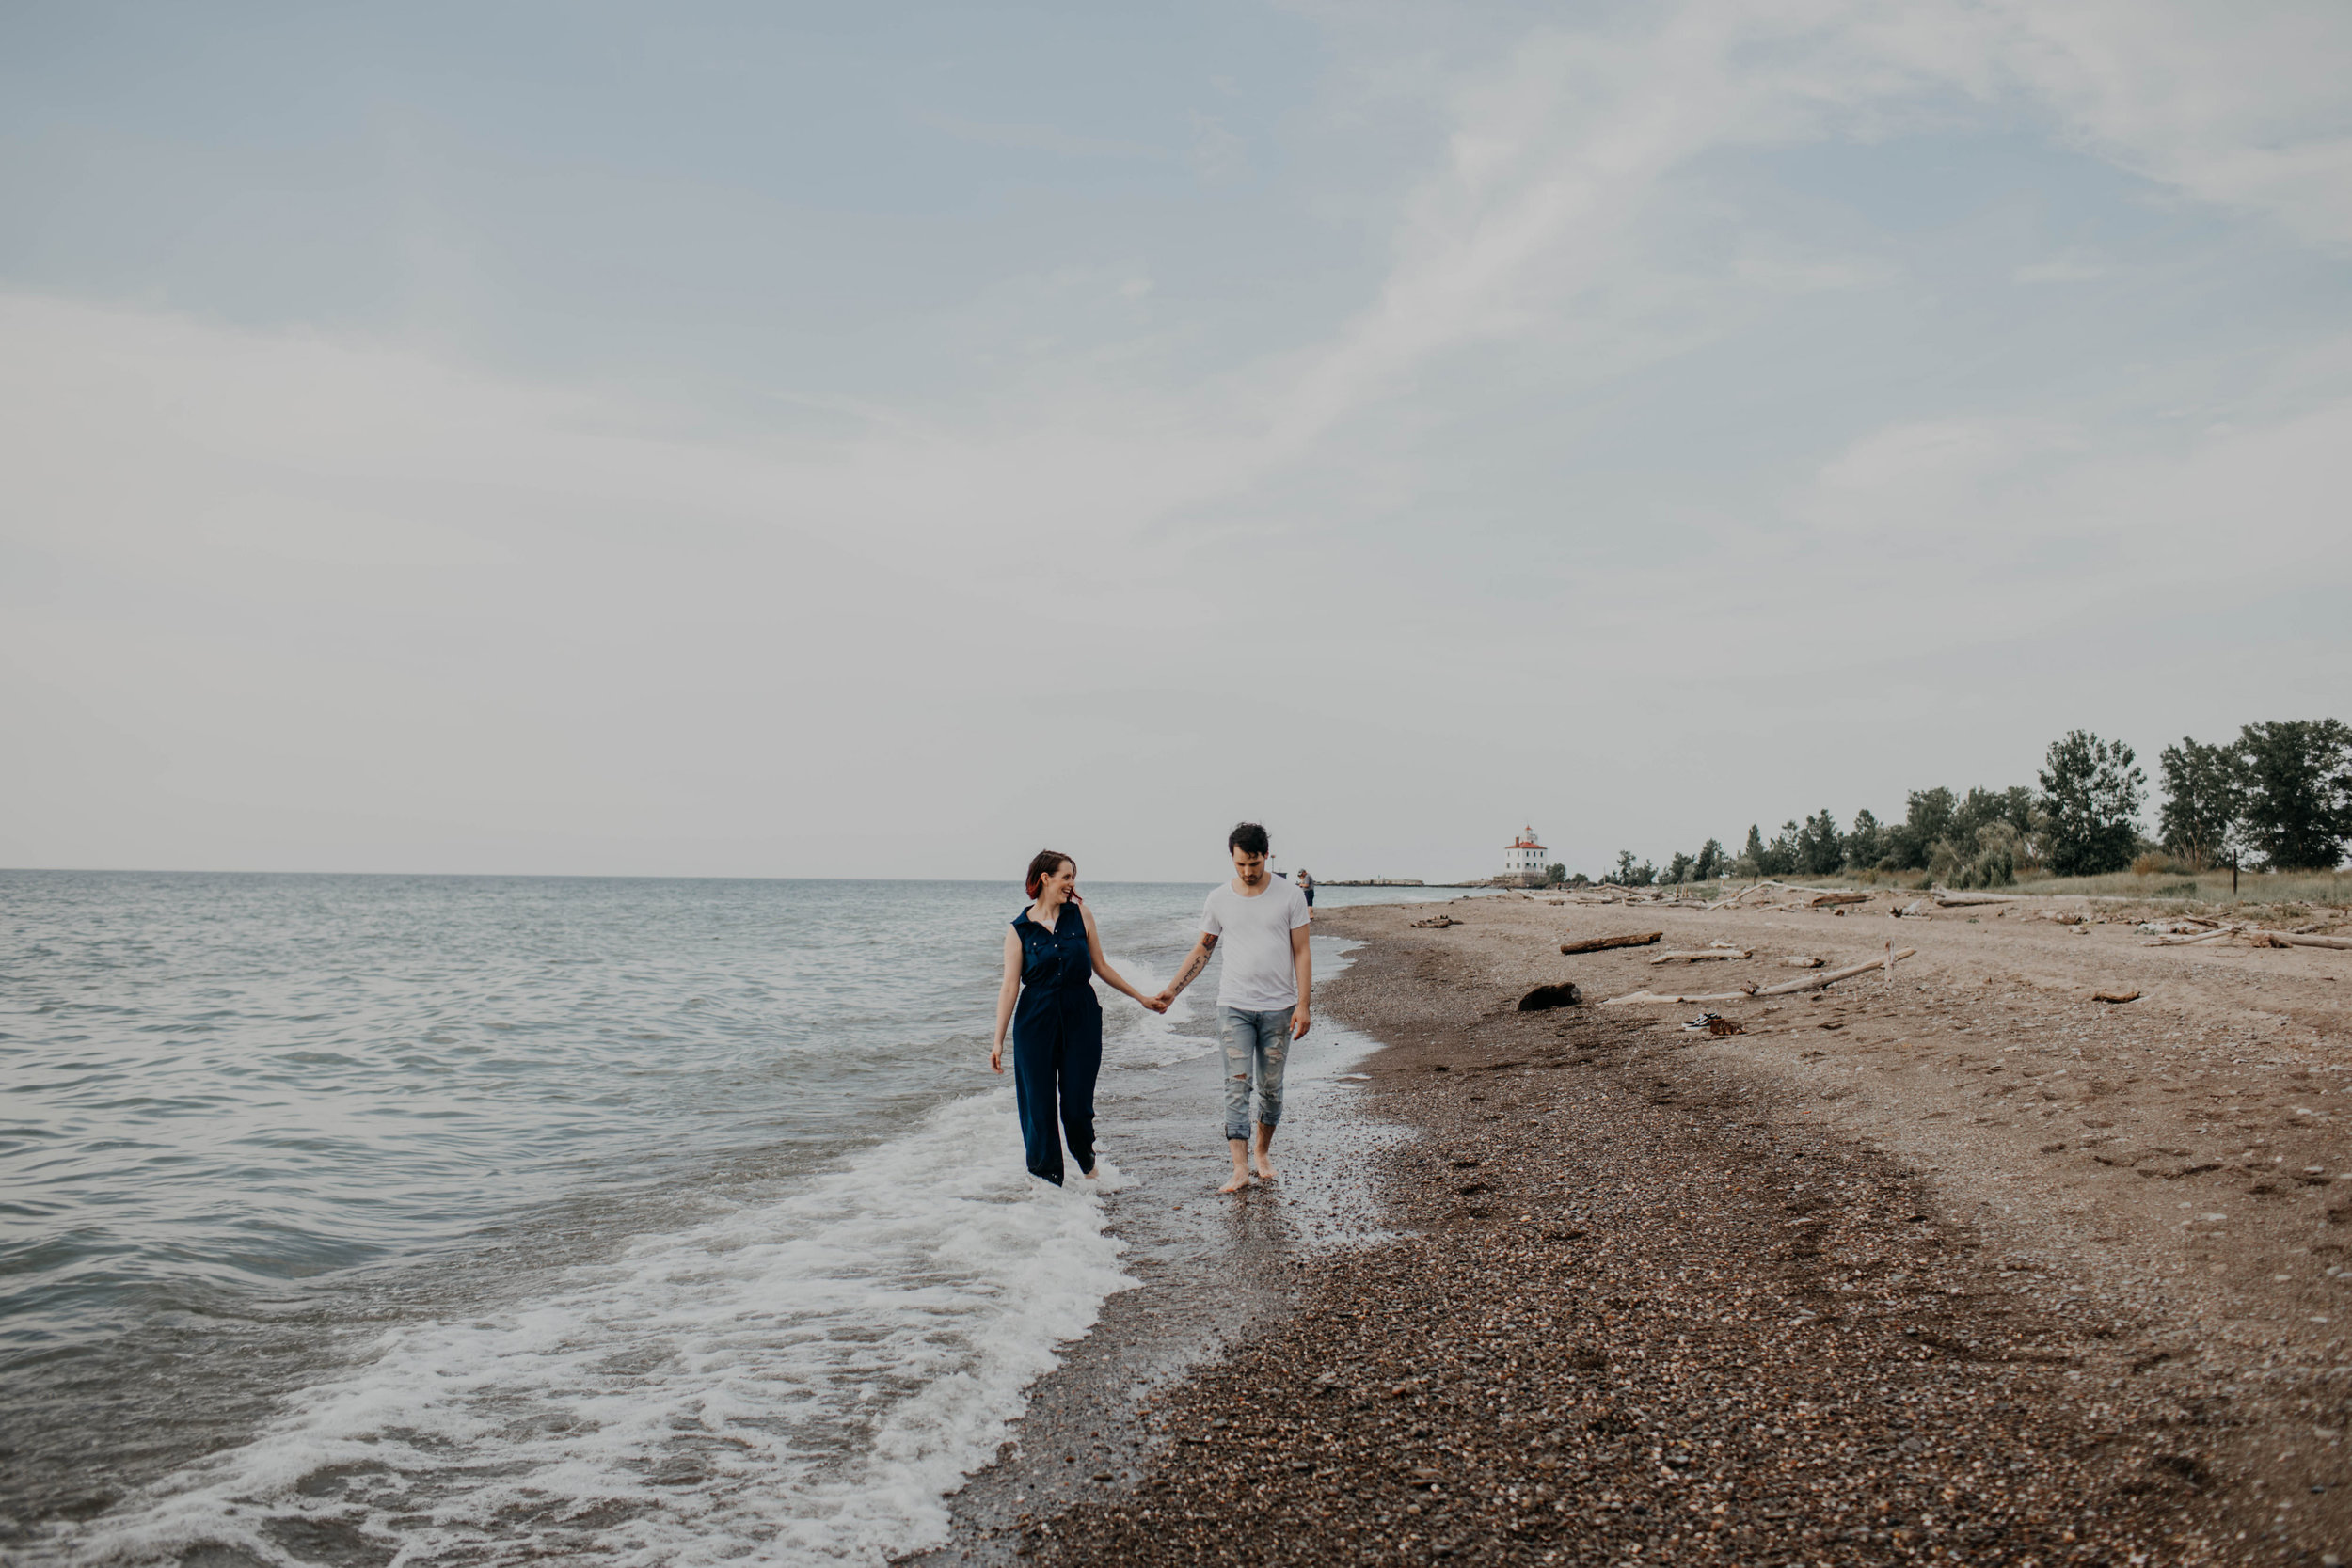 Headlands Beach State Park Mentor Ohio Photo Session wedding anniversary photo session grace e jones photography107.jpg